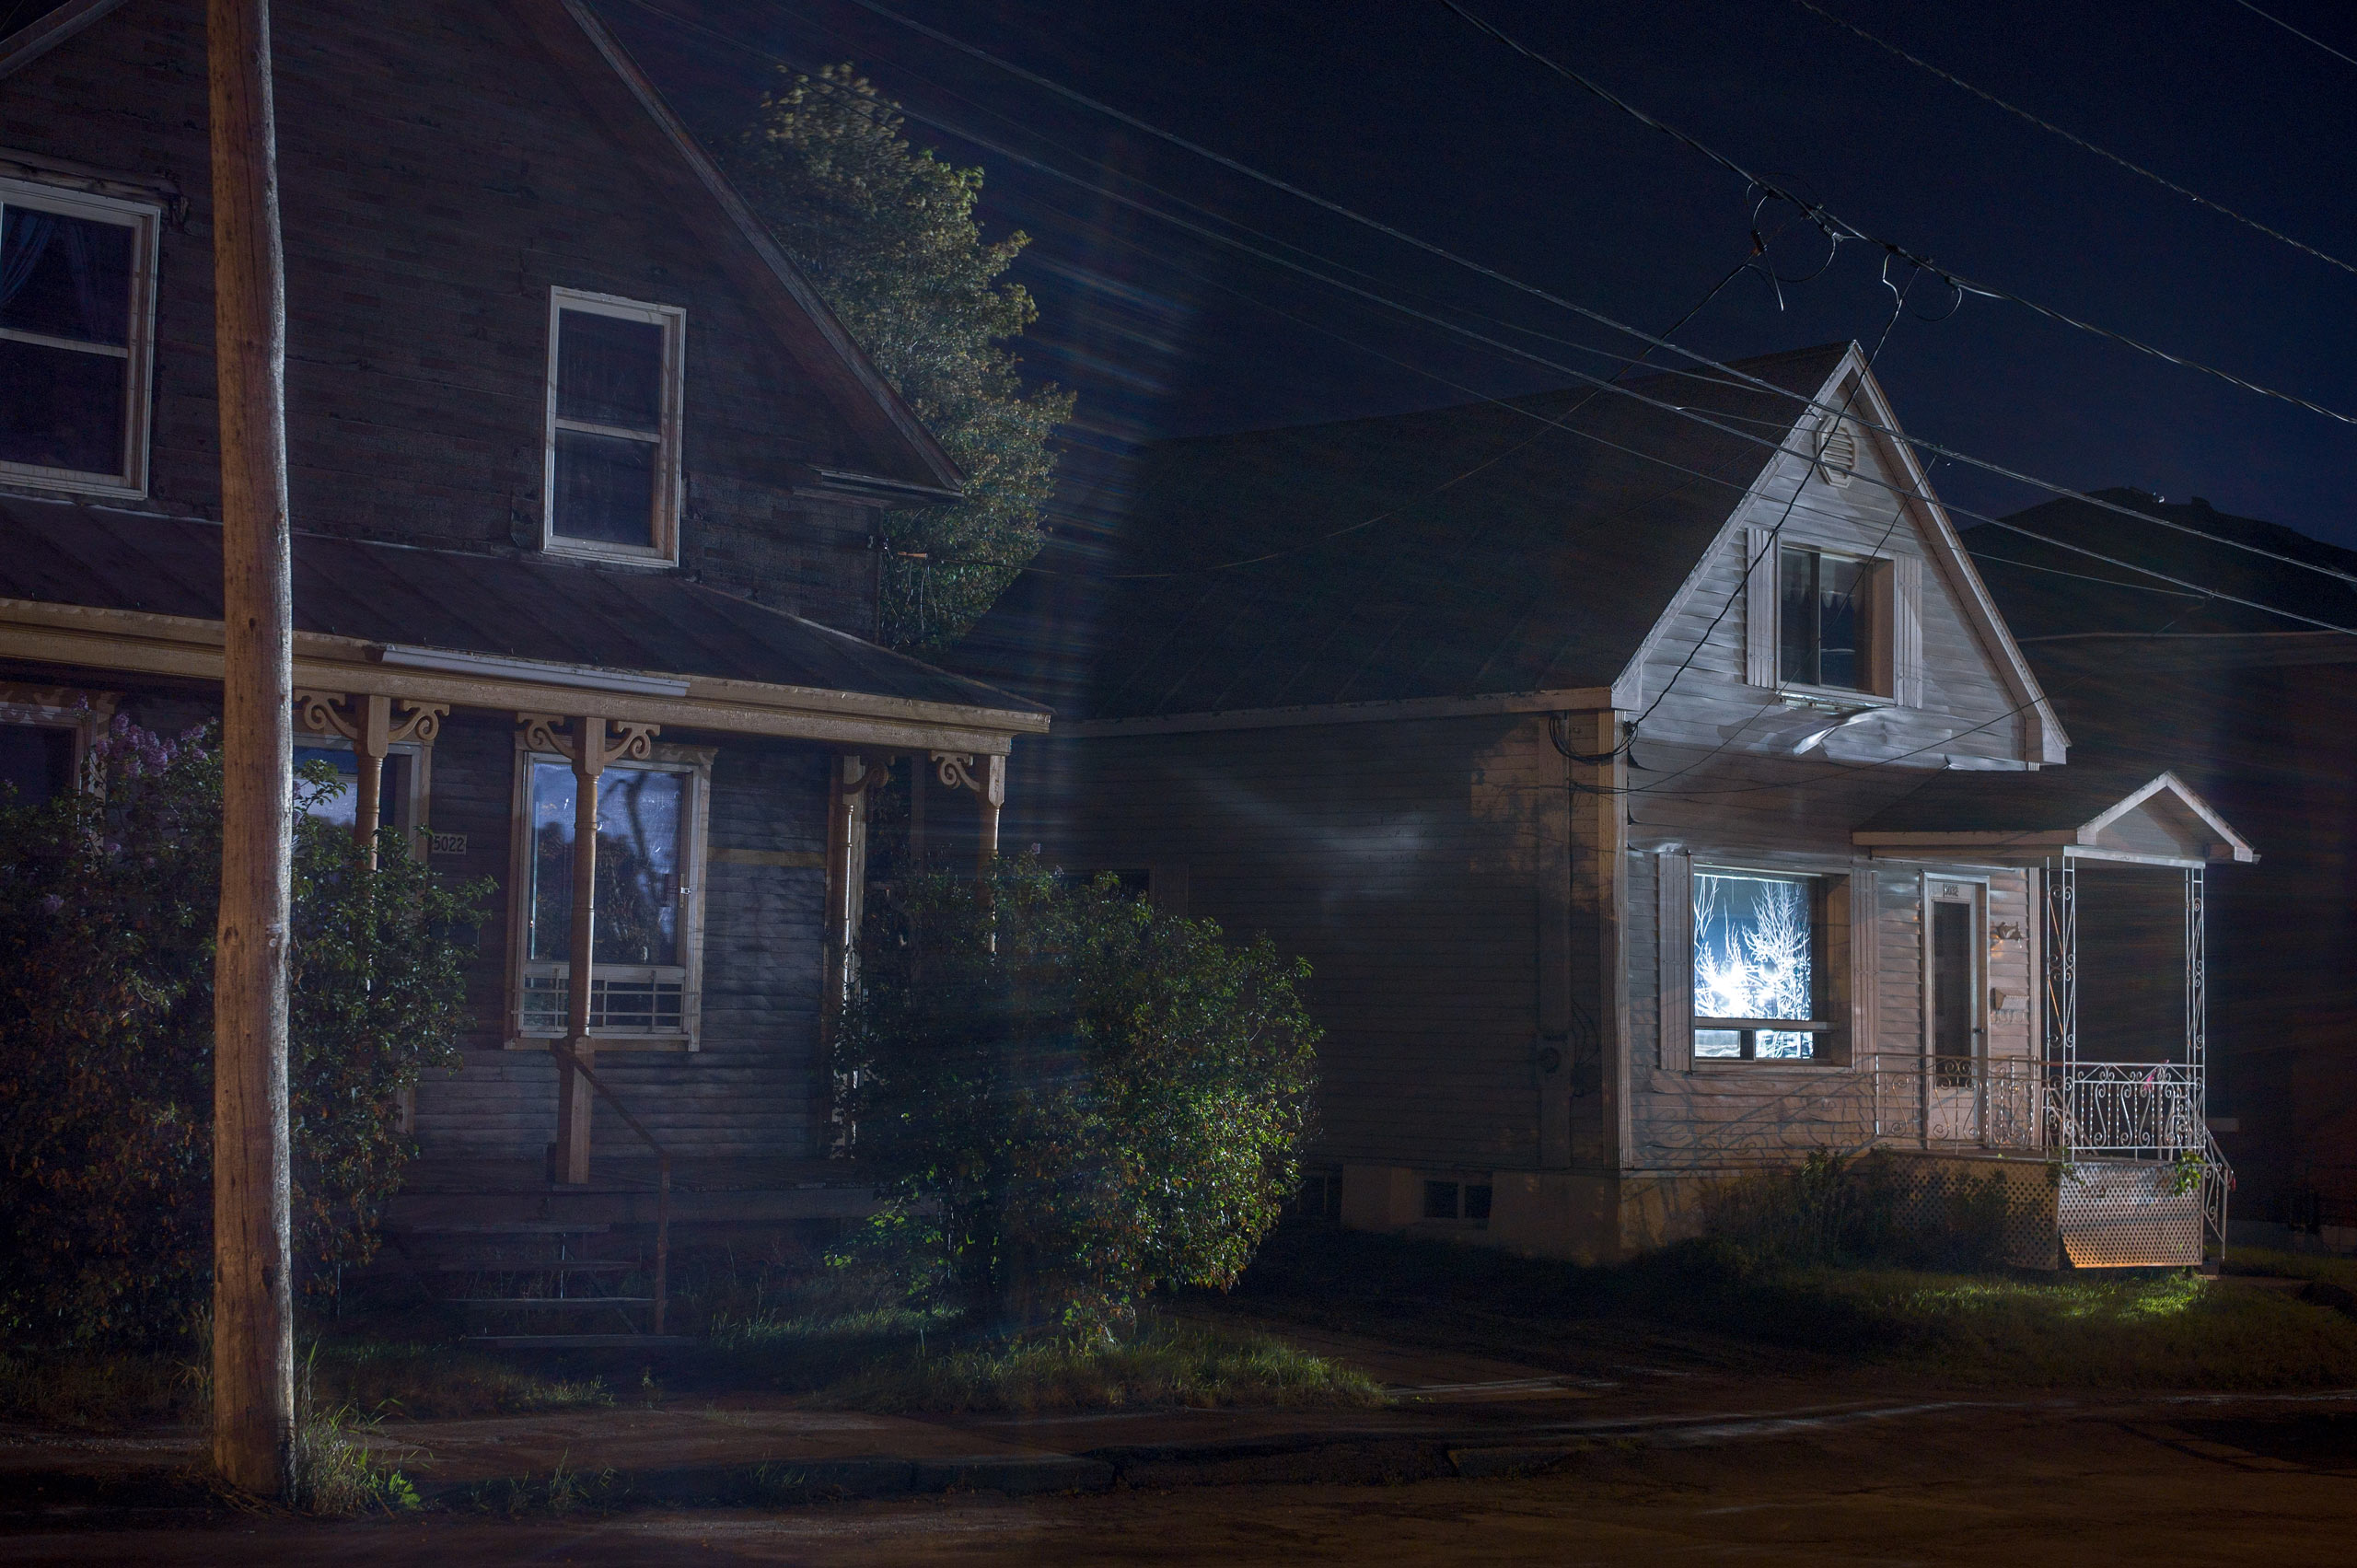 Houses lit by spotlights from the Red Zone, Aug. 2013. From the series  Post Mégantic.